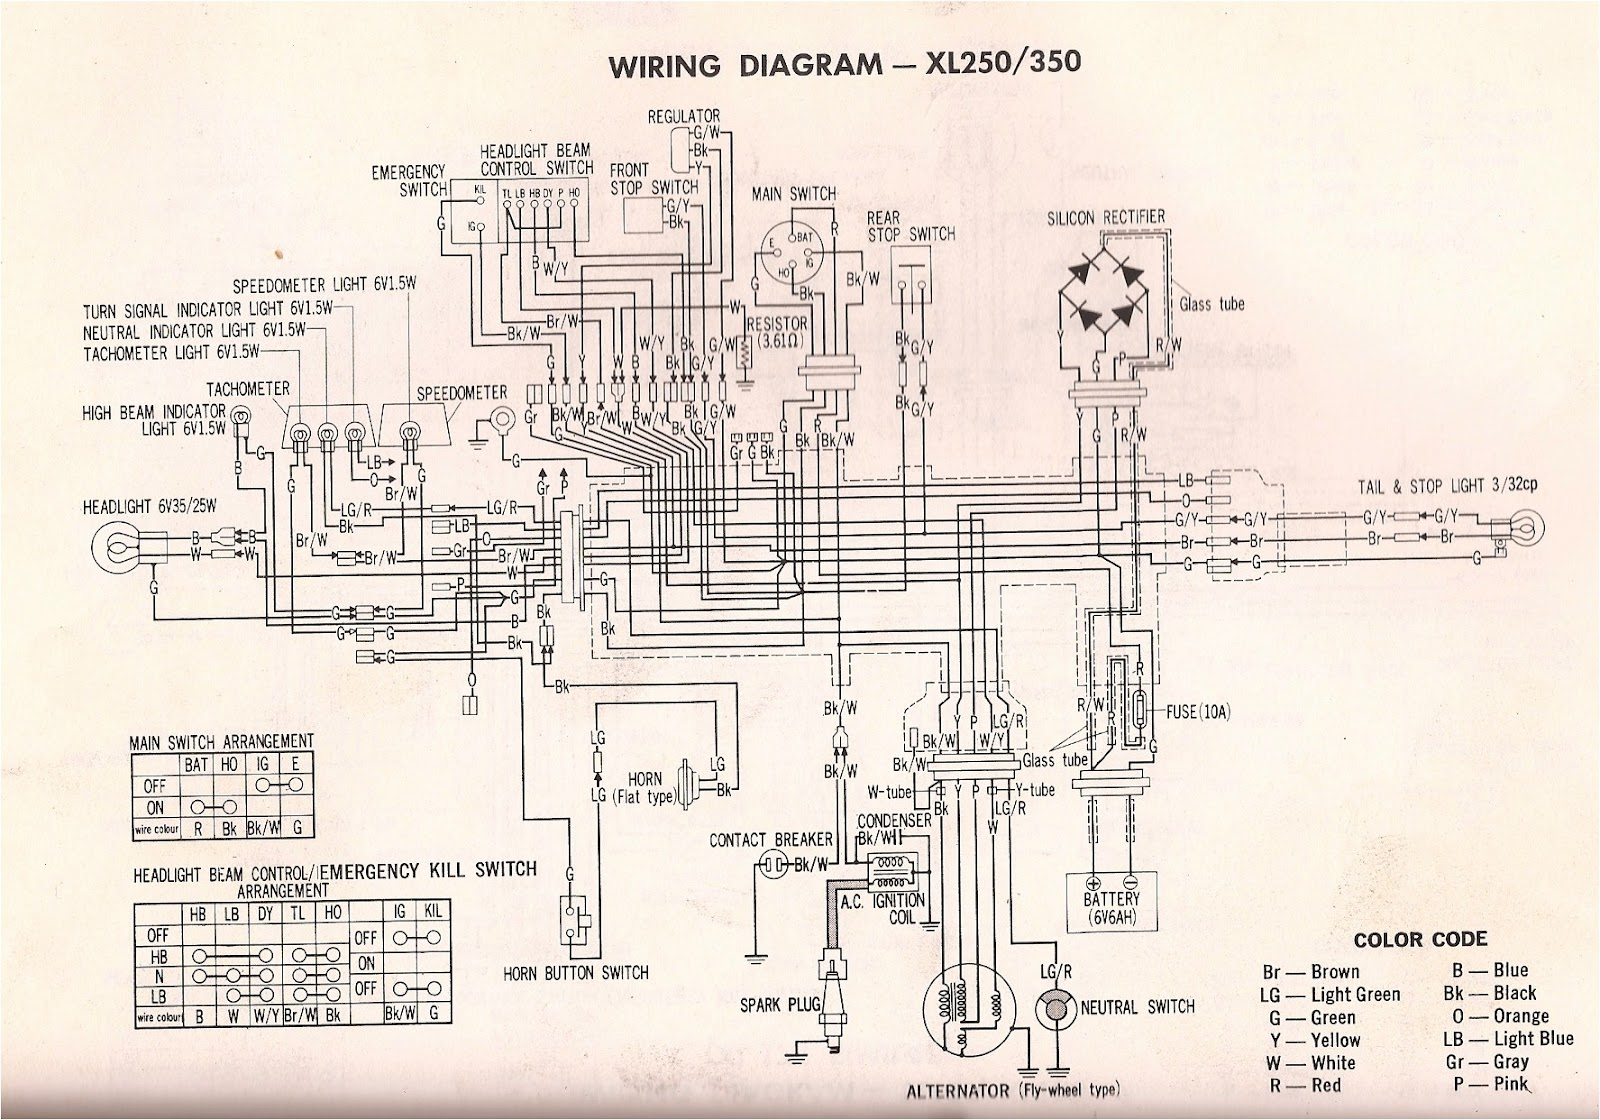 Exciting Honda 3813 Wiring Diagram Photos Best Image Wiring - Honda Dio Zx Wiring Diagram